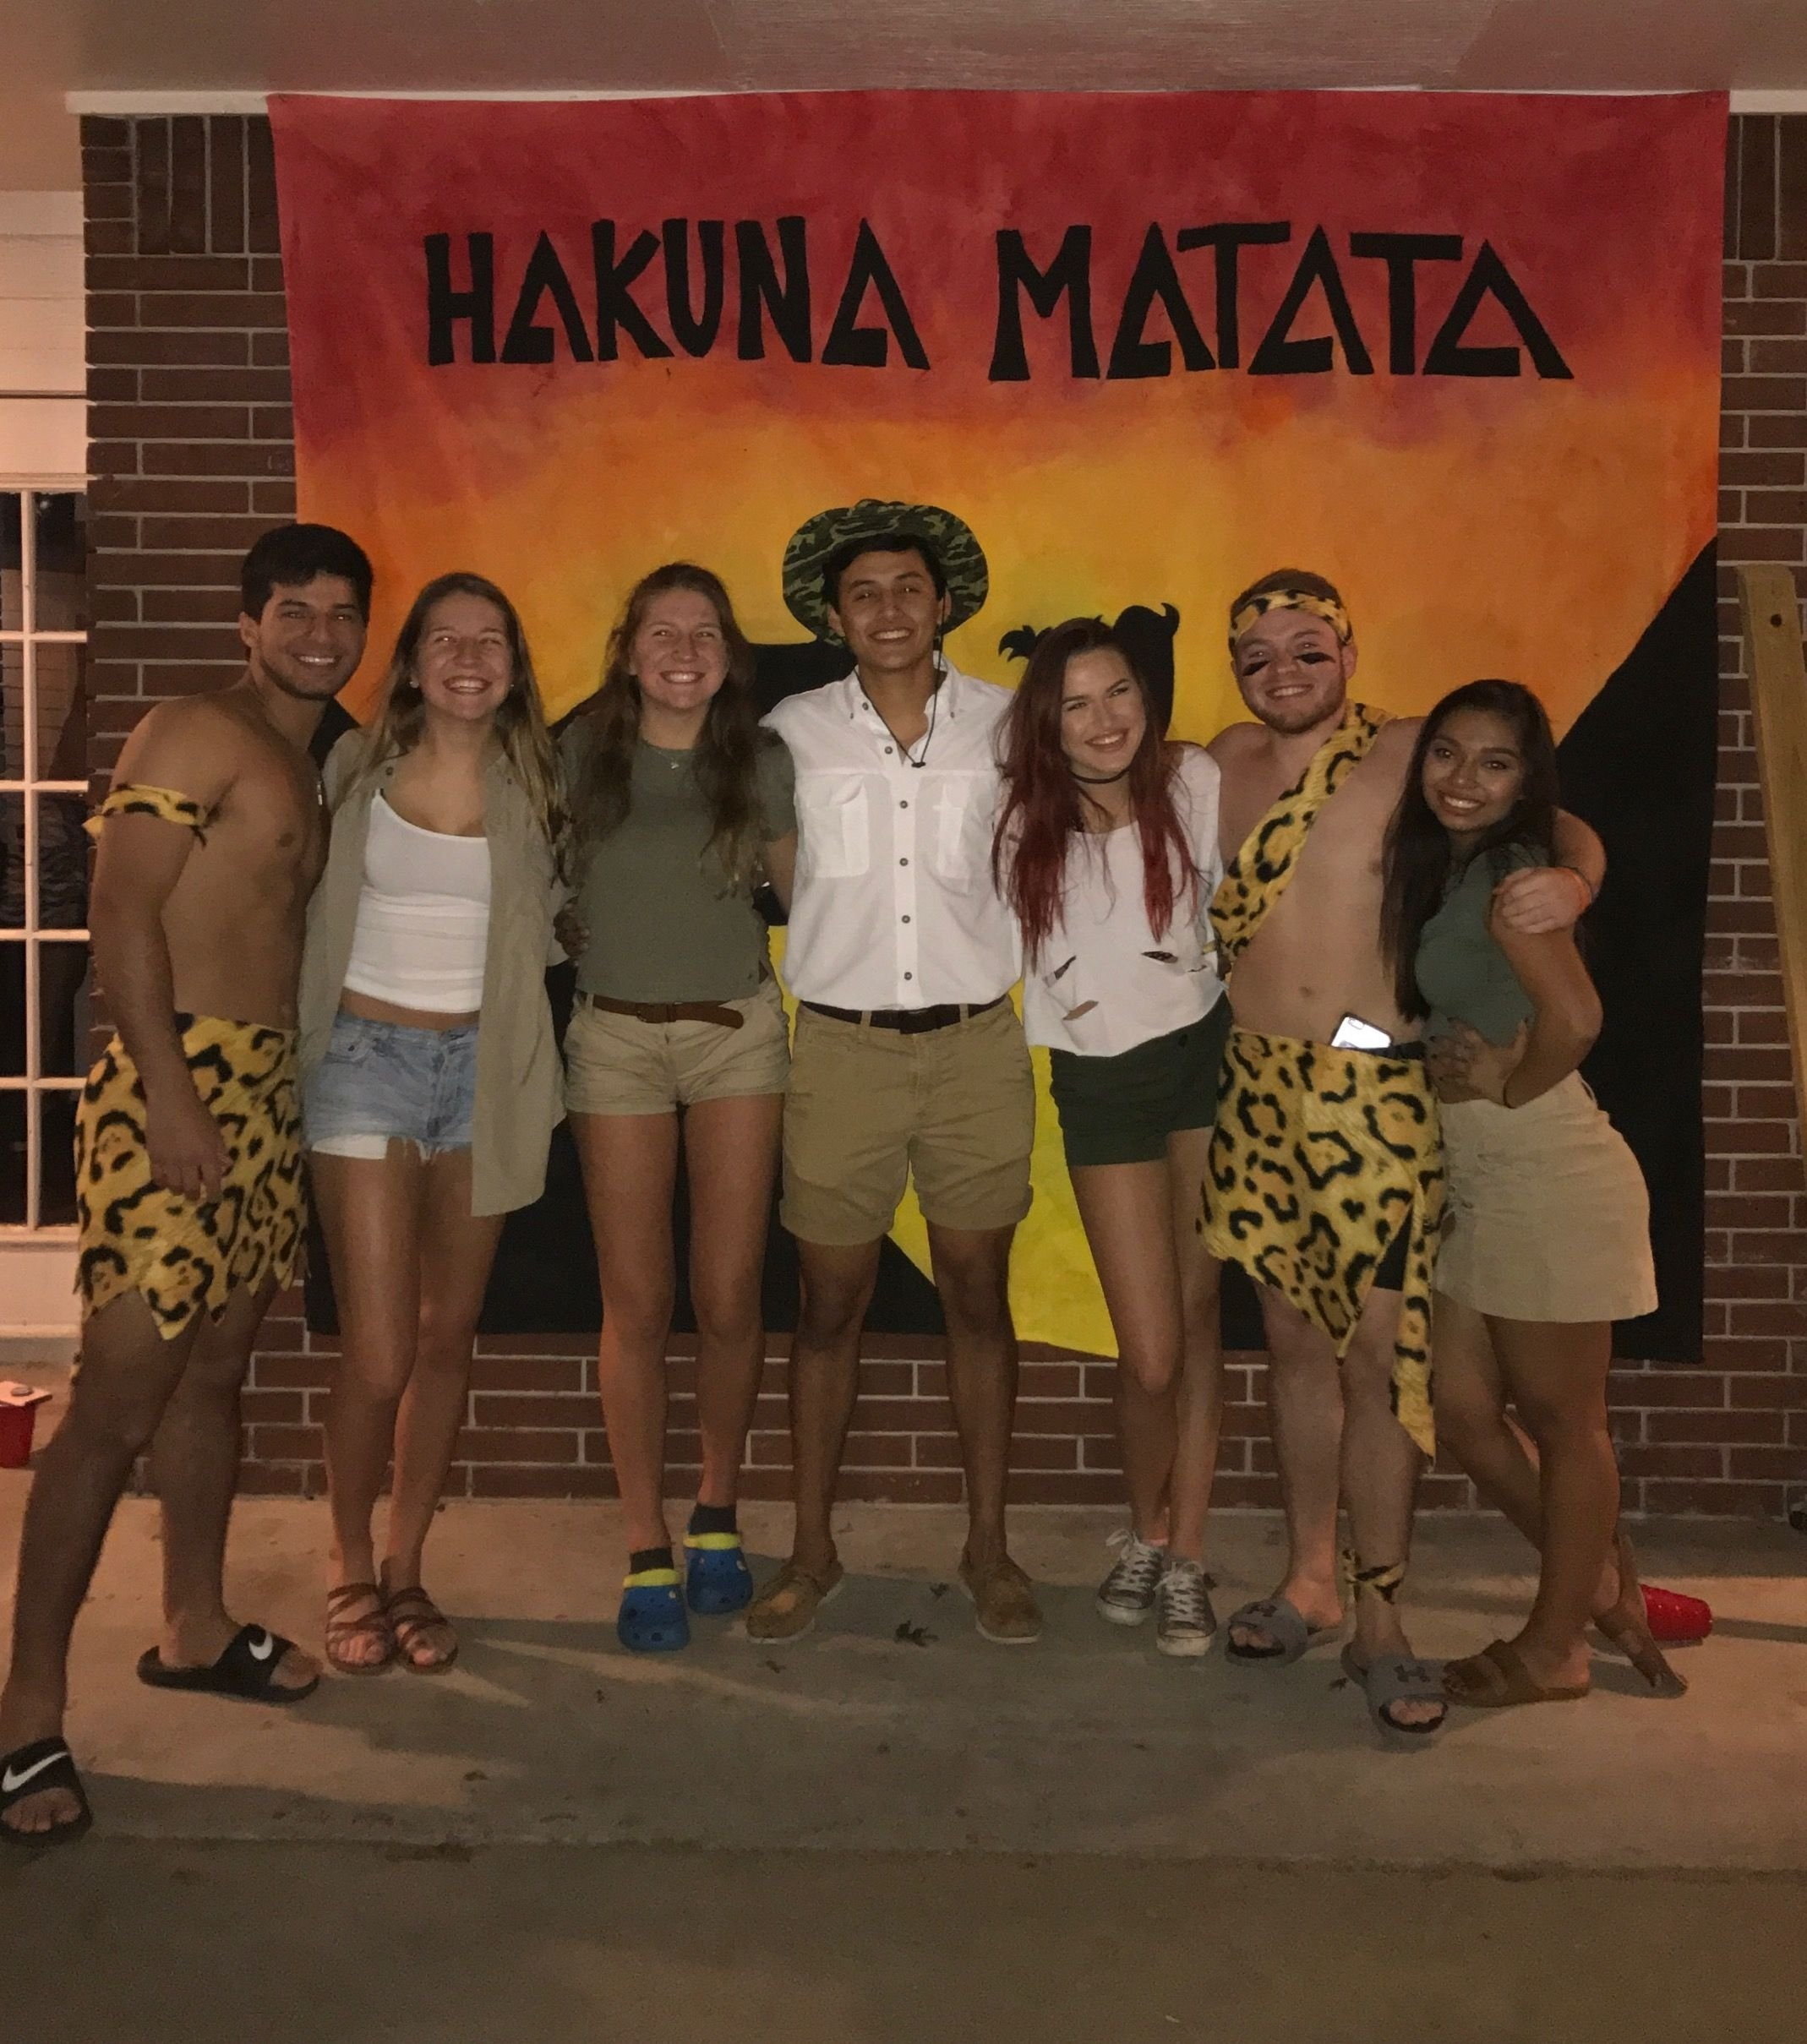 10 Amazing Themed Party Ideas For College pinlise c on college party themes pinterest safari theme 2021